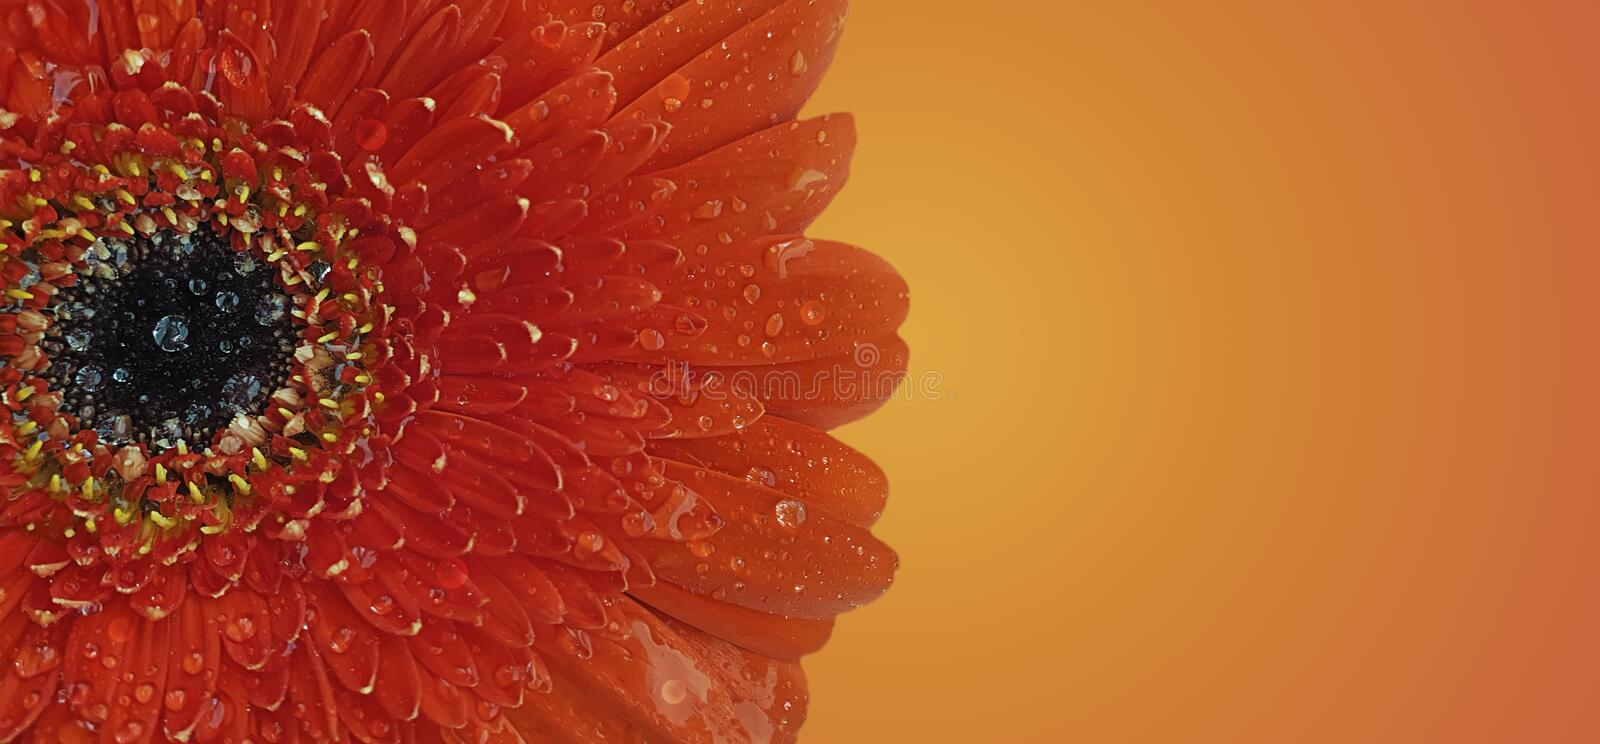 Red gerbera flower wet closeup stock images